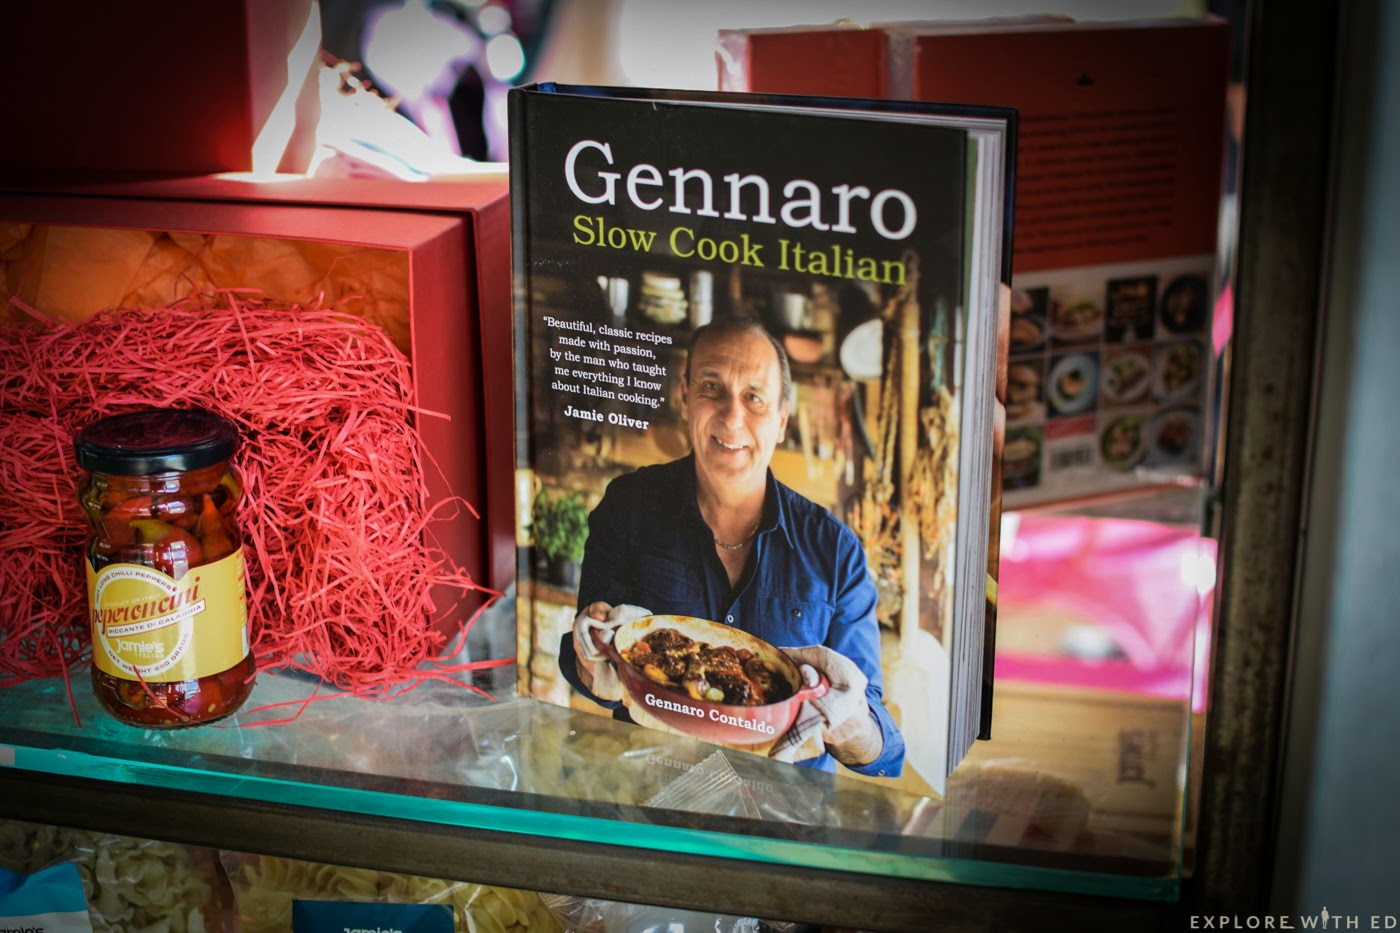 Gennaro Contaldo Slow Italian Cooking Book